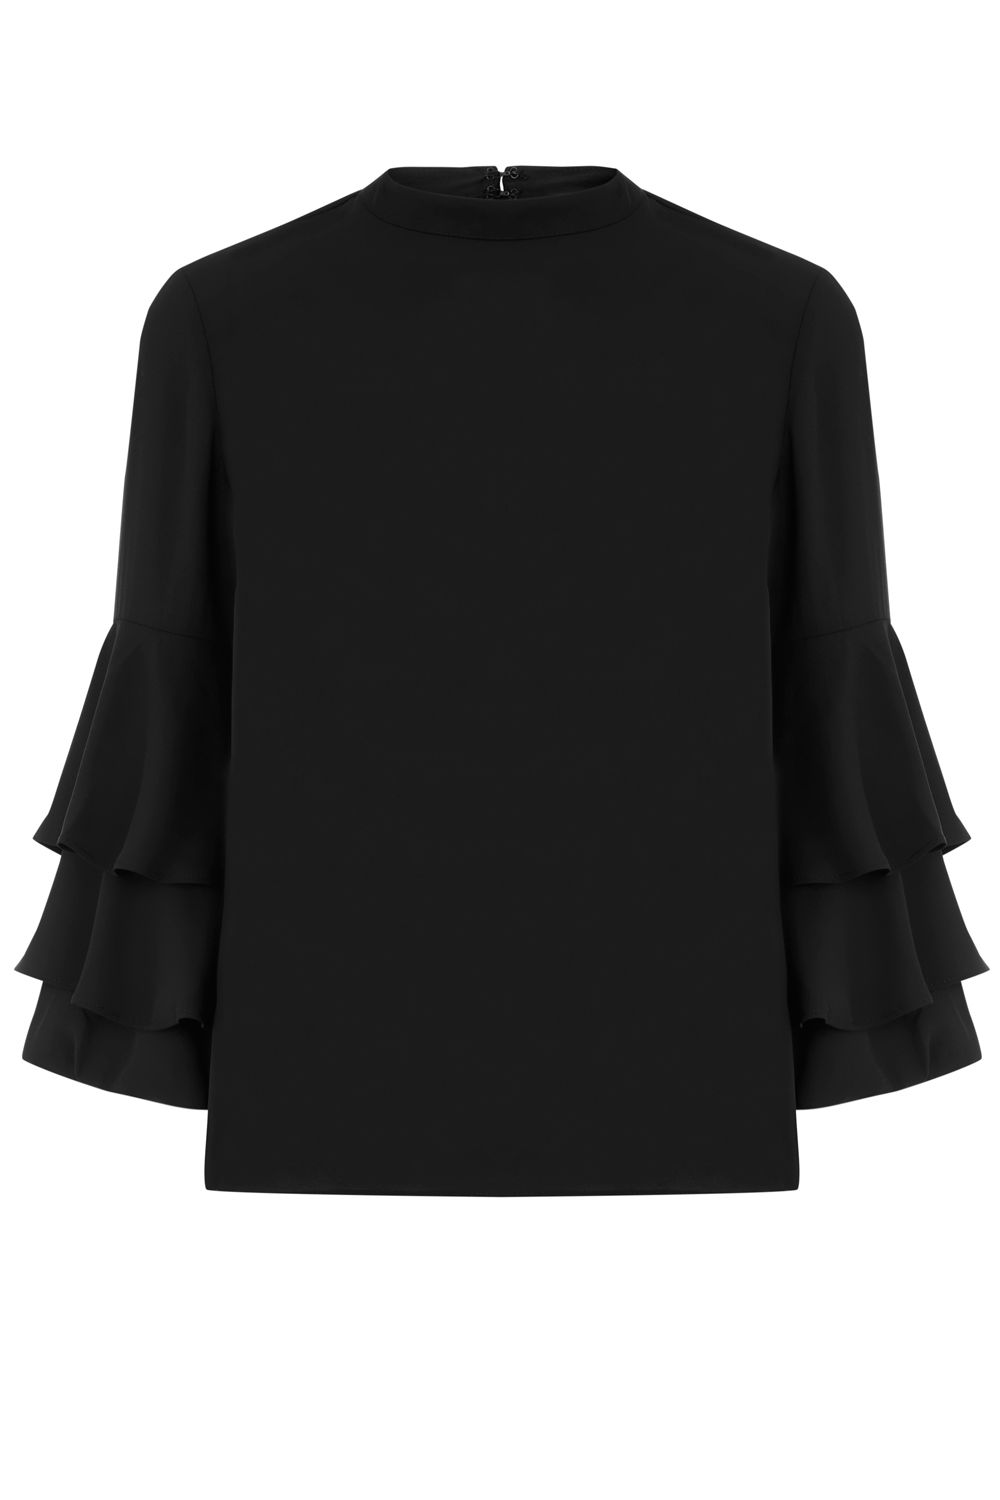 Warehouse Tiered Sleeve Top, Black